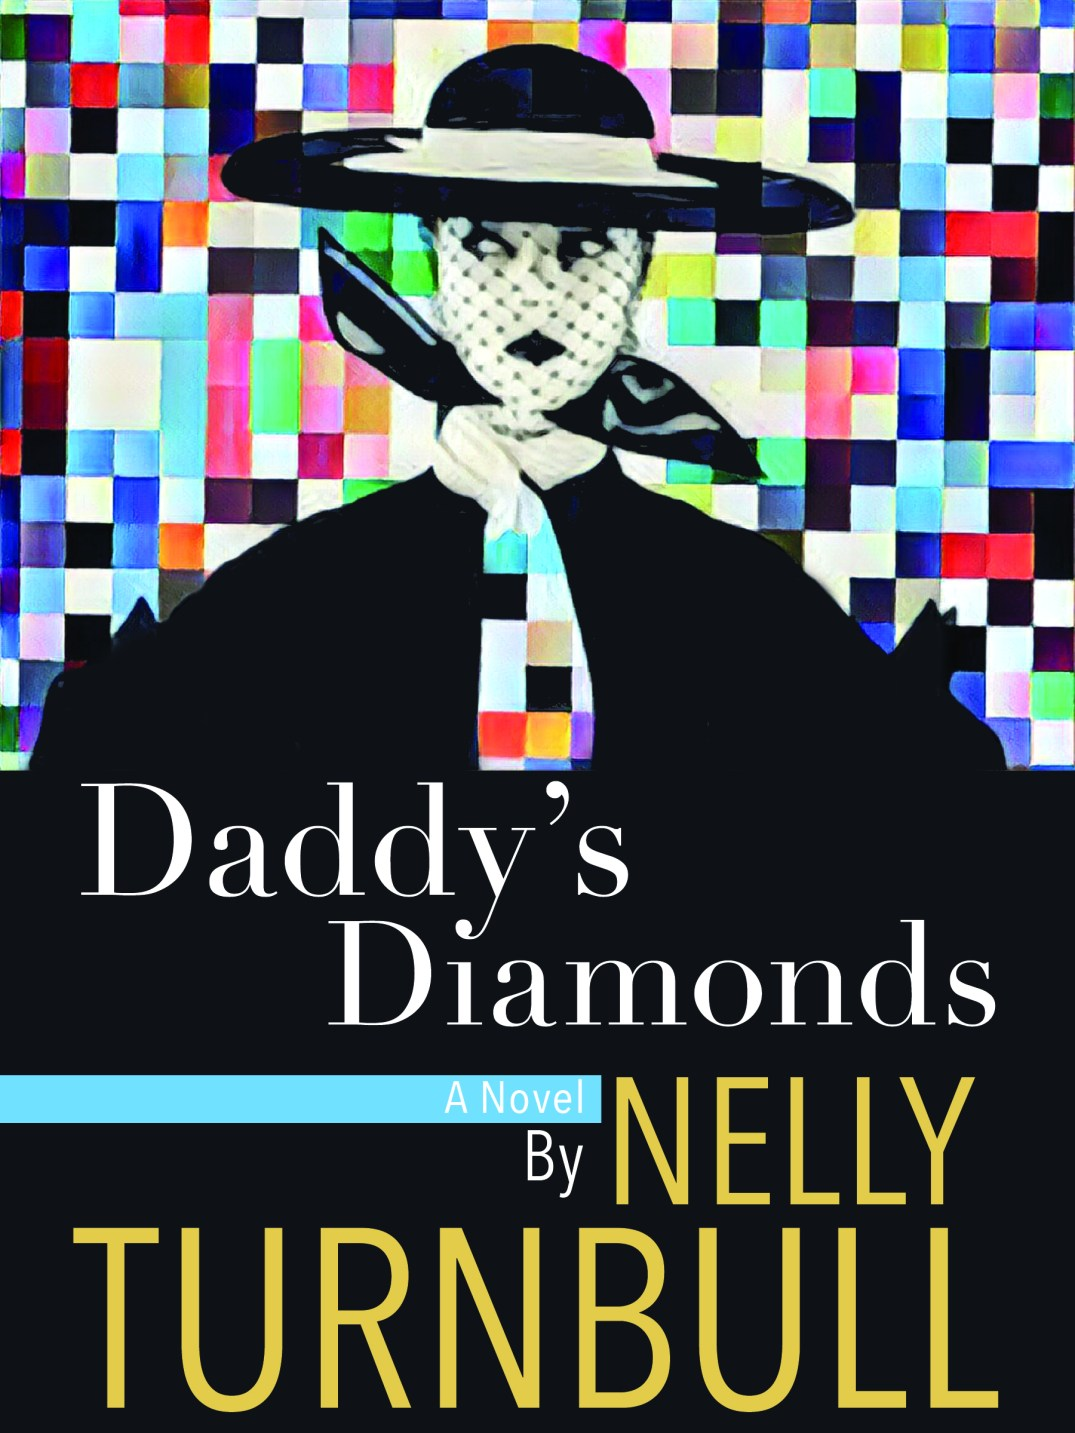 Daddy's Diamonds